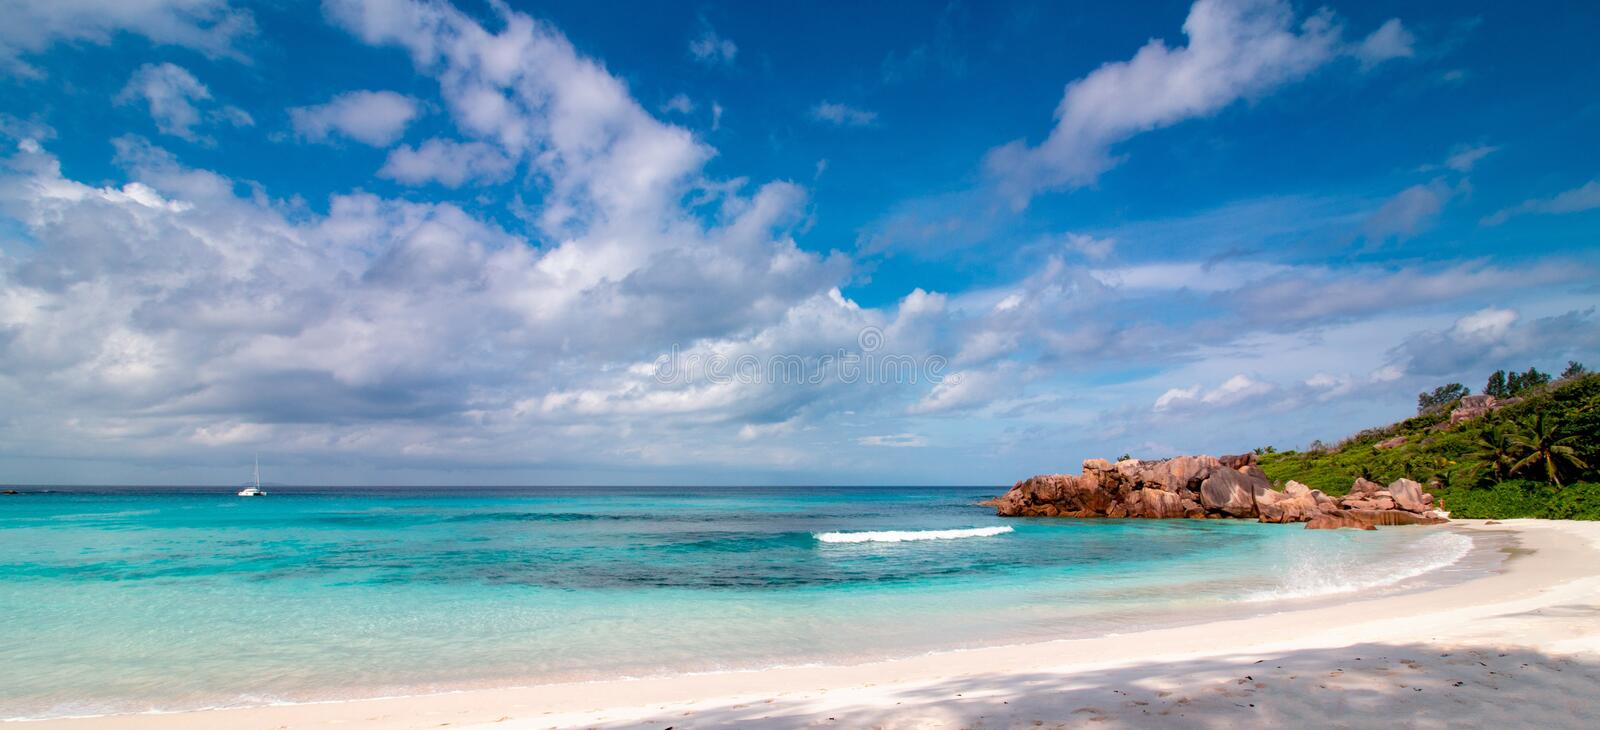 Panorama of Seychelles. Tropical beach and turquoise ocean to relax royalty free stock image